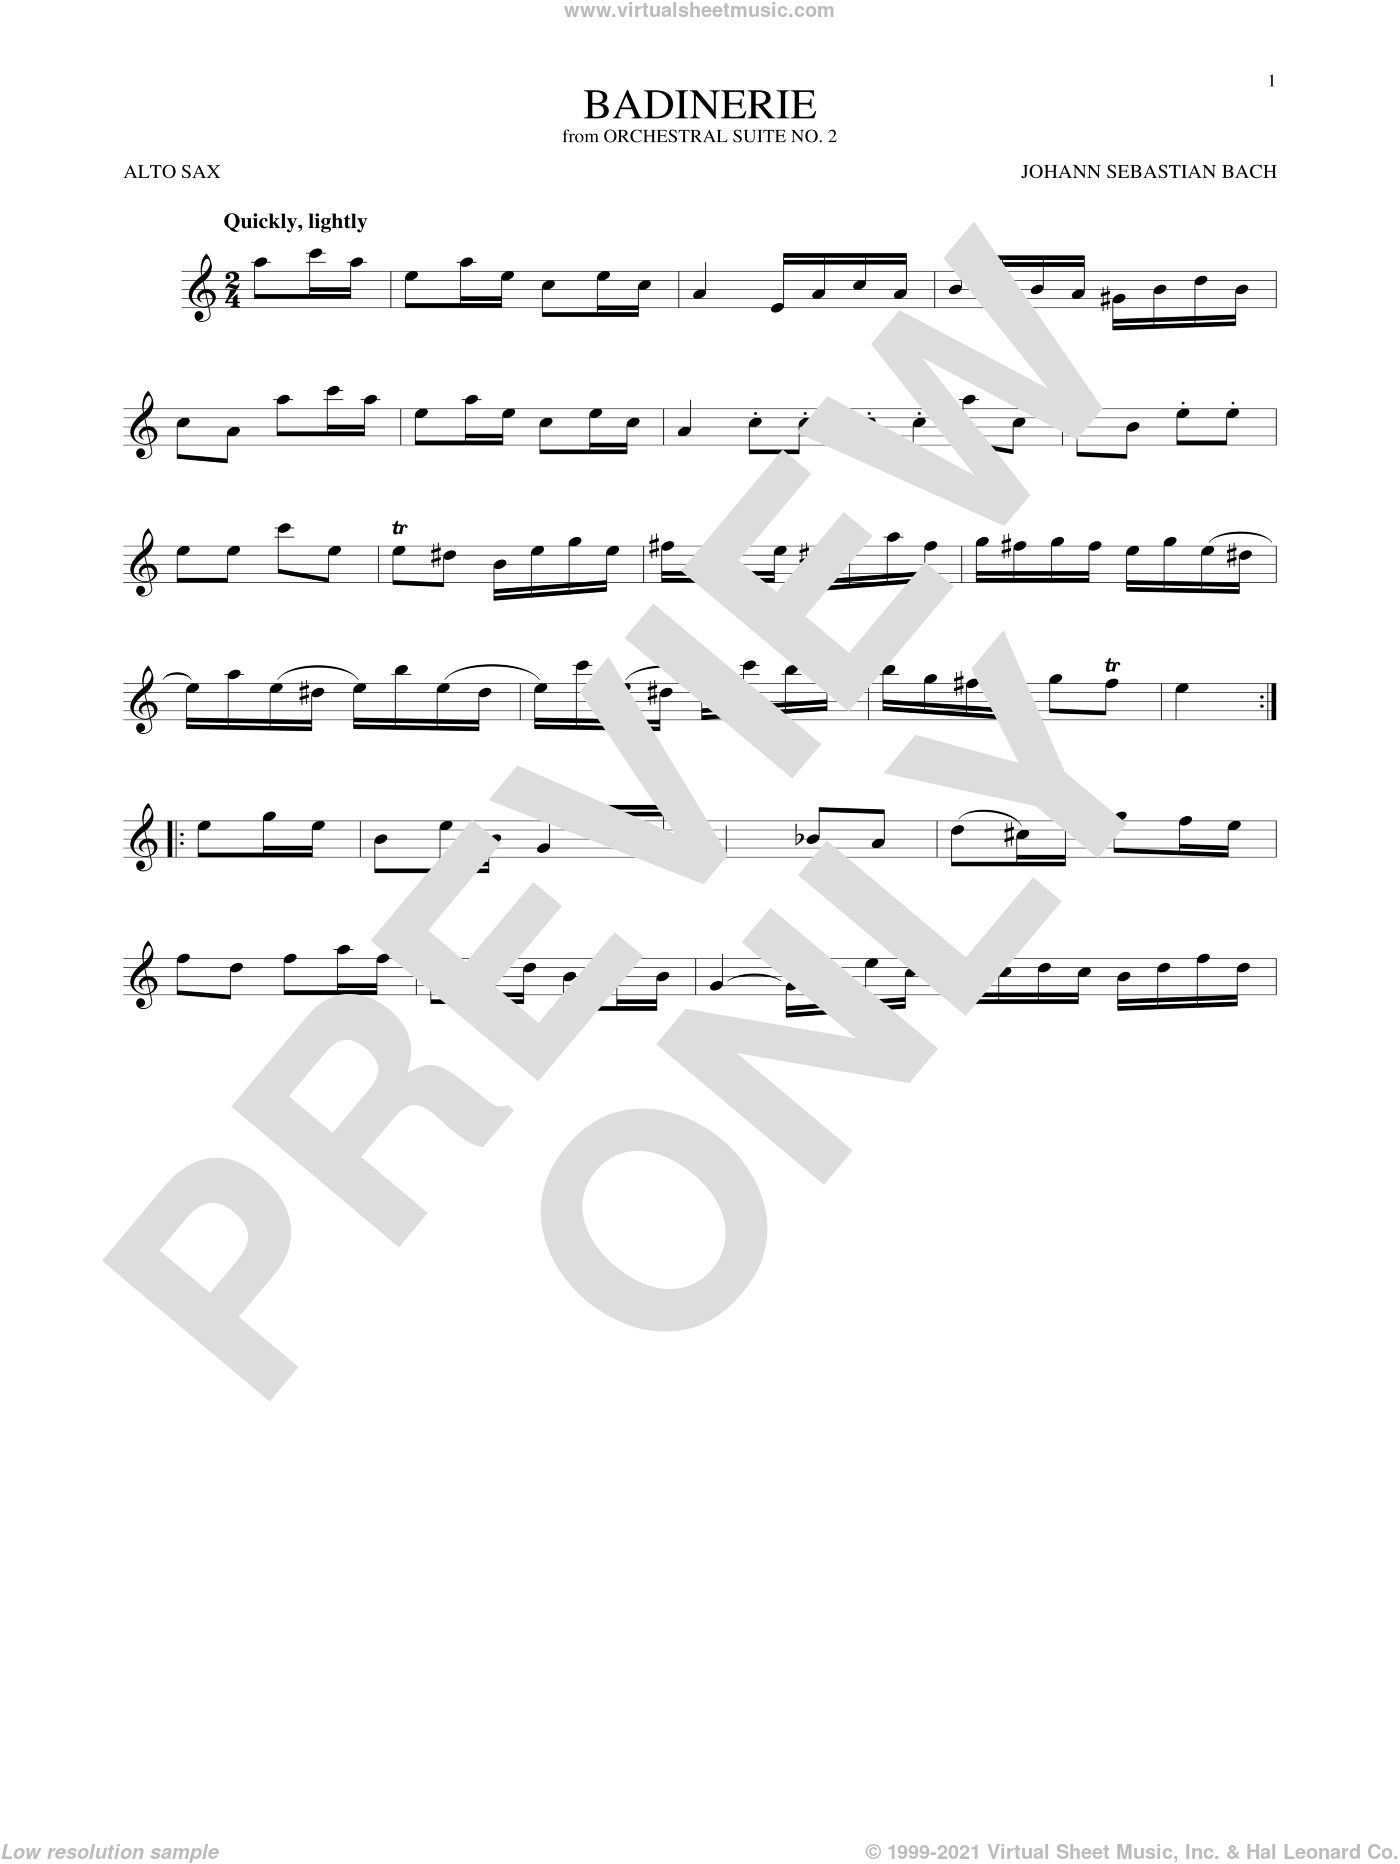 Badinerie (Suite No. 2) sheet music for alto saxophone solo by Johann Sebastian Bach, classical score, intermediate skill level